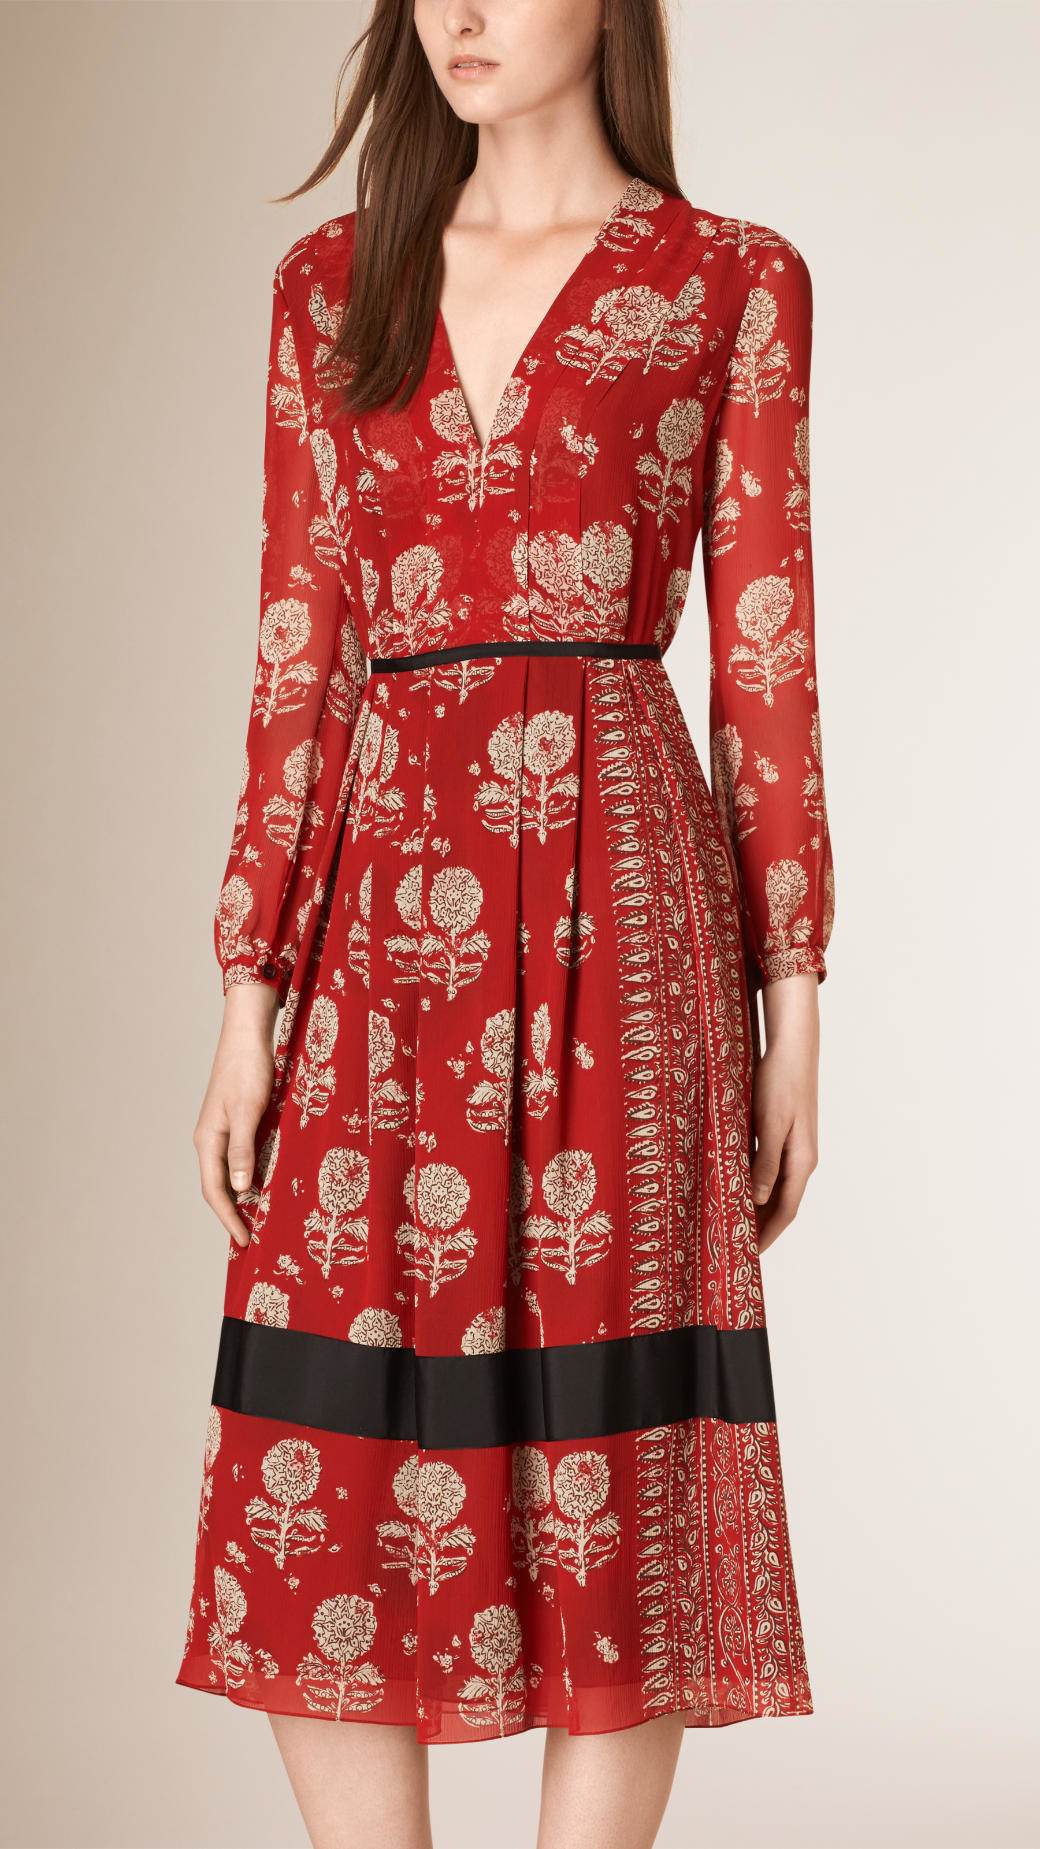 Burberry print dress weddings dresses for Red line printing